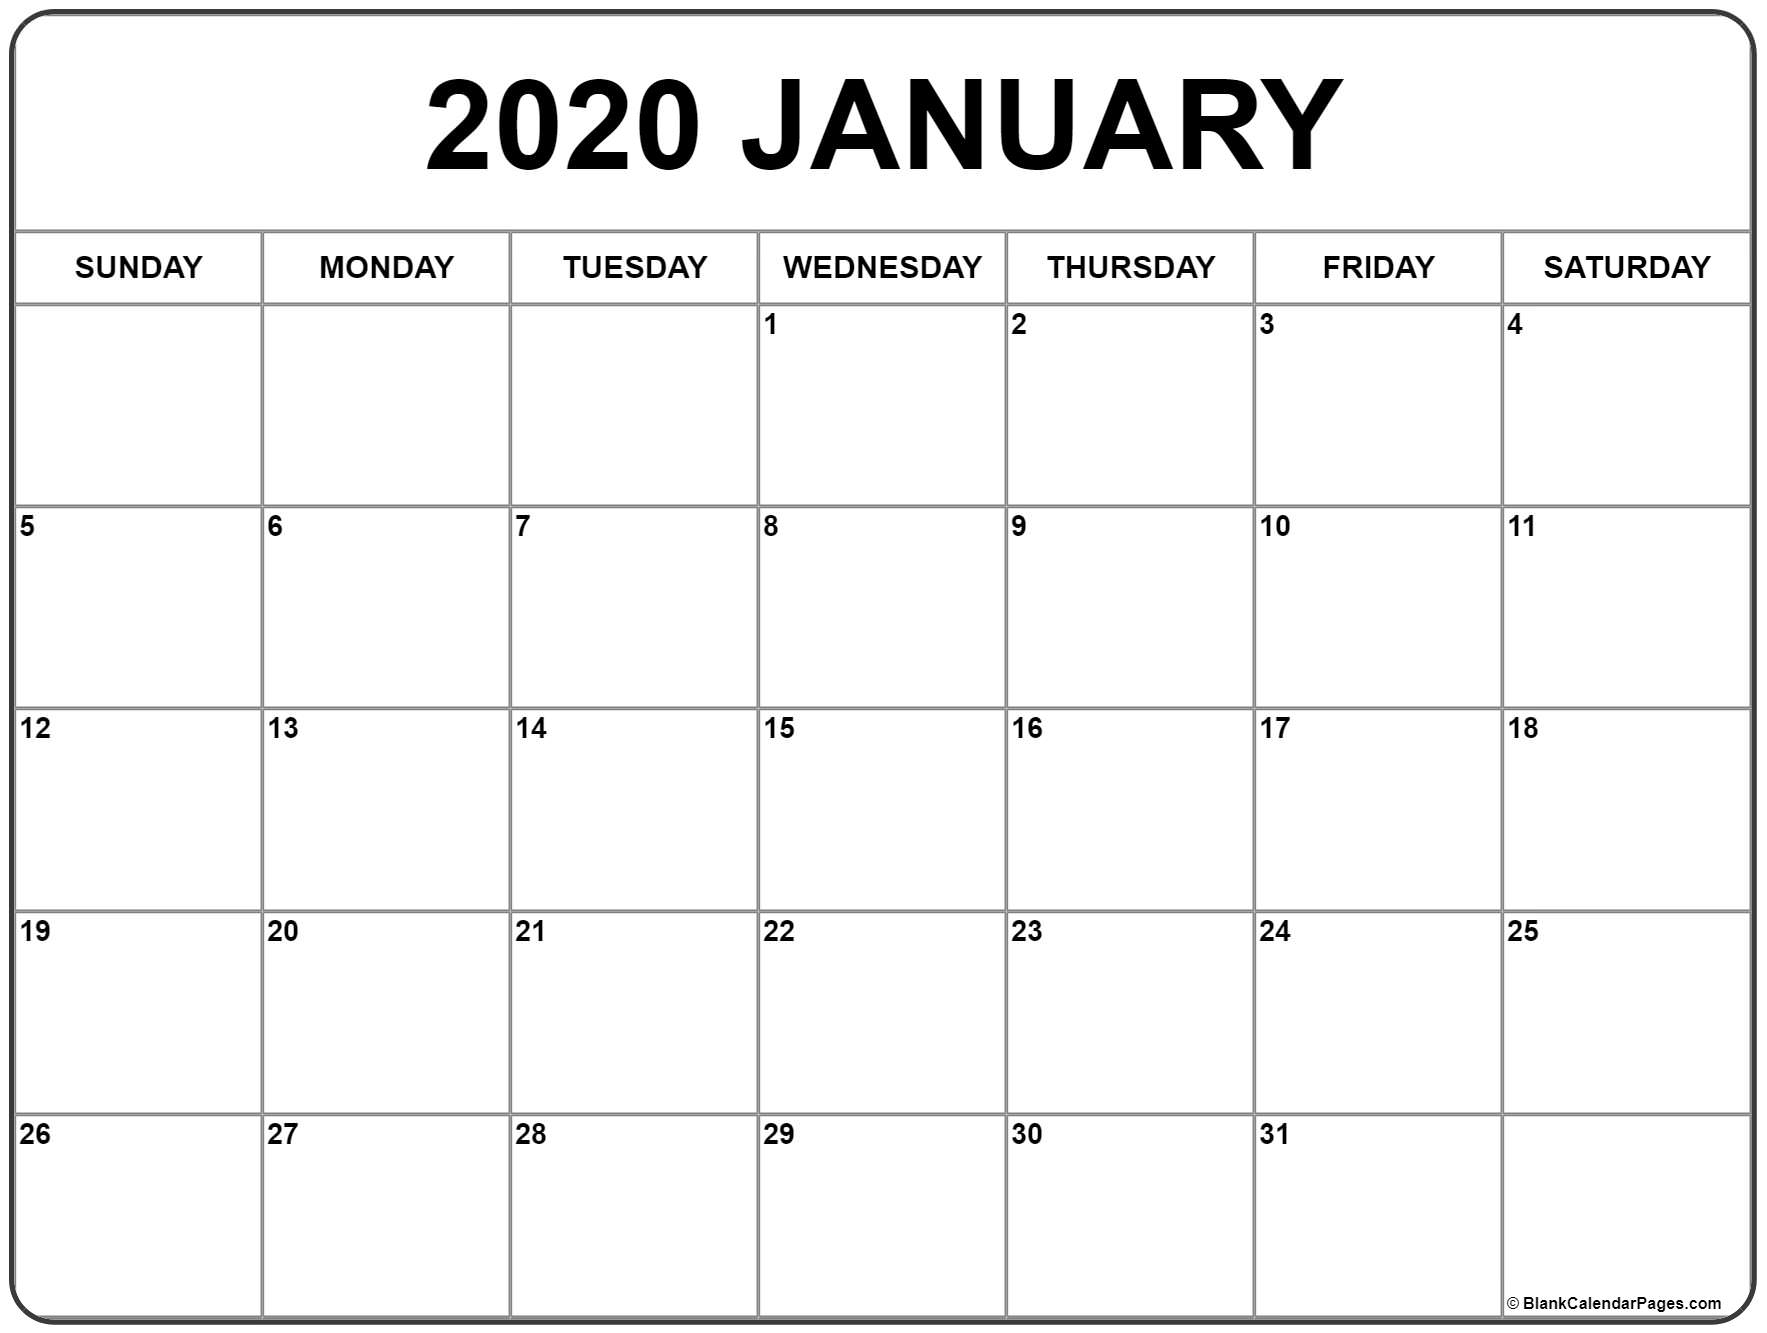 January 2020 Calendar | Free Printable Monthly Calendars intended for Large Print 2020 Calendar To Print Free